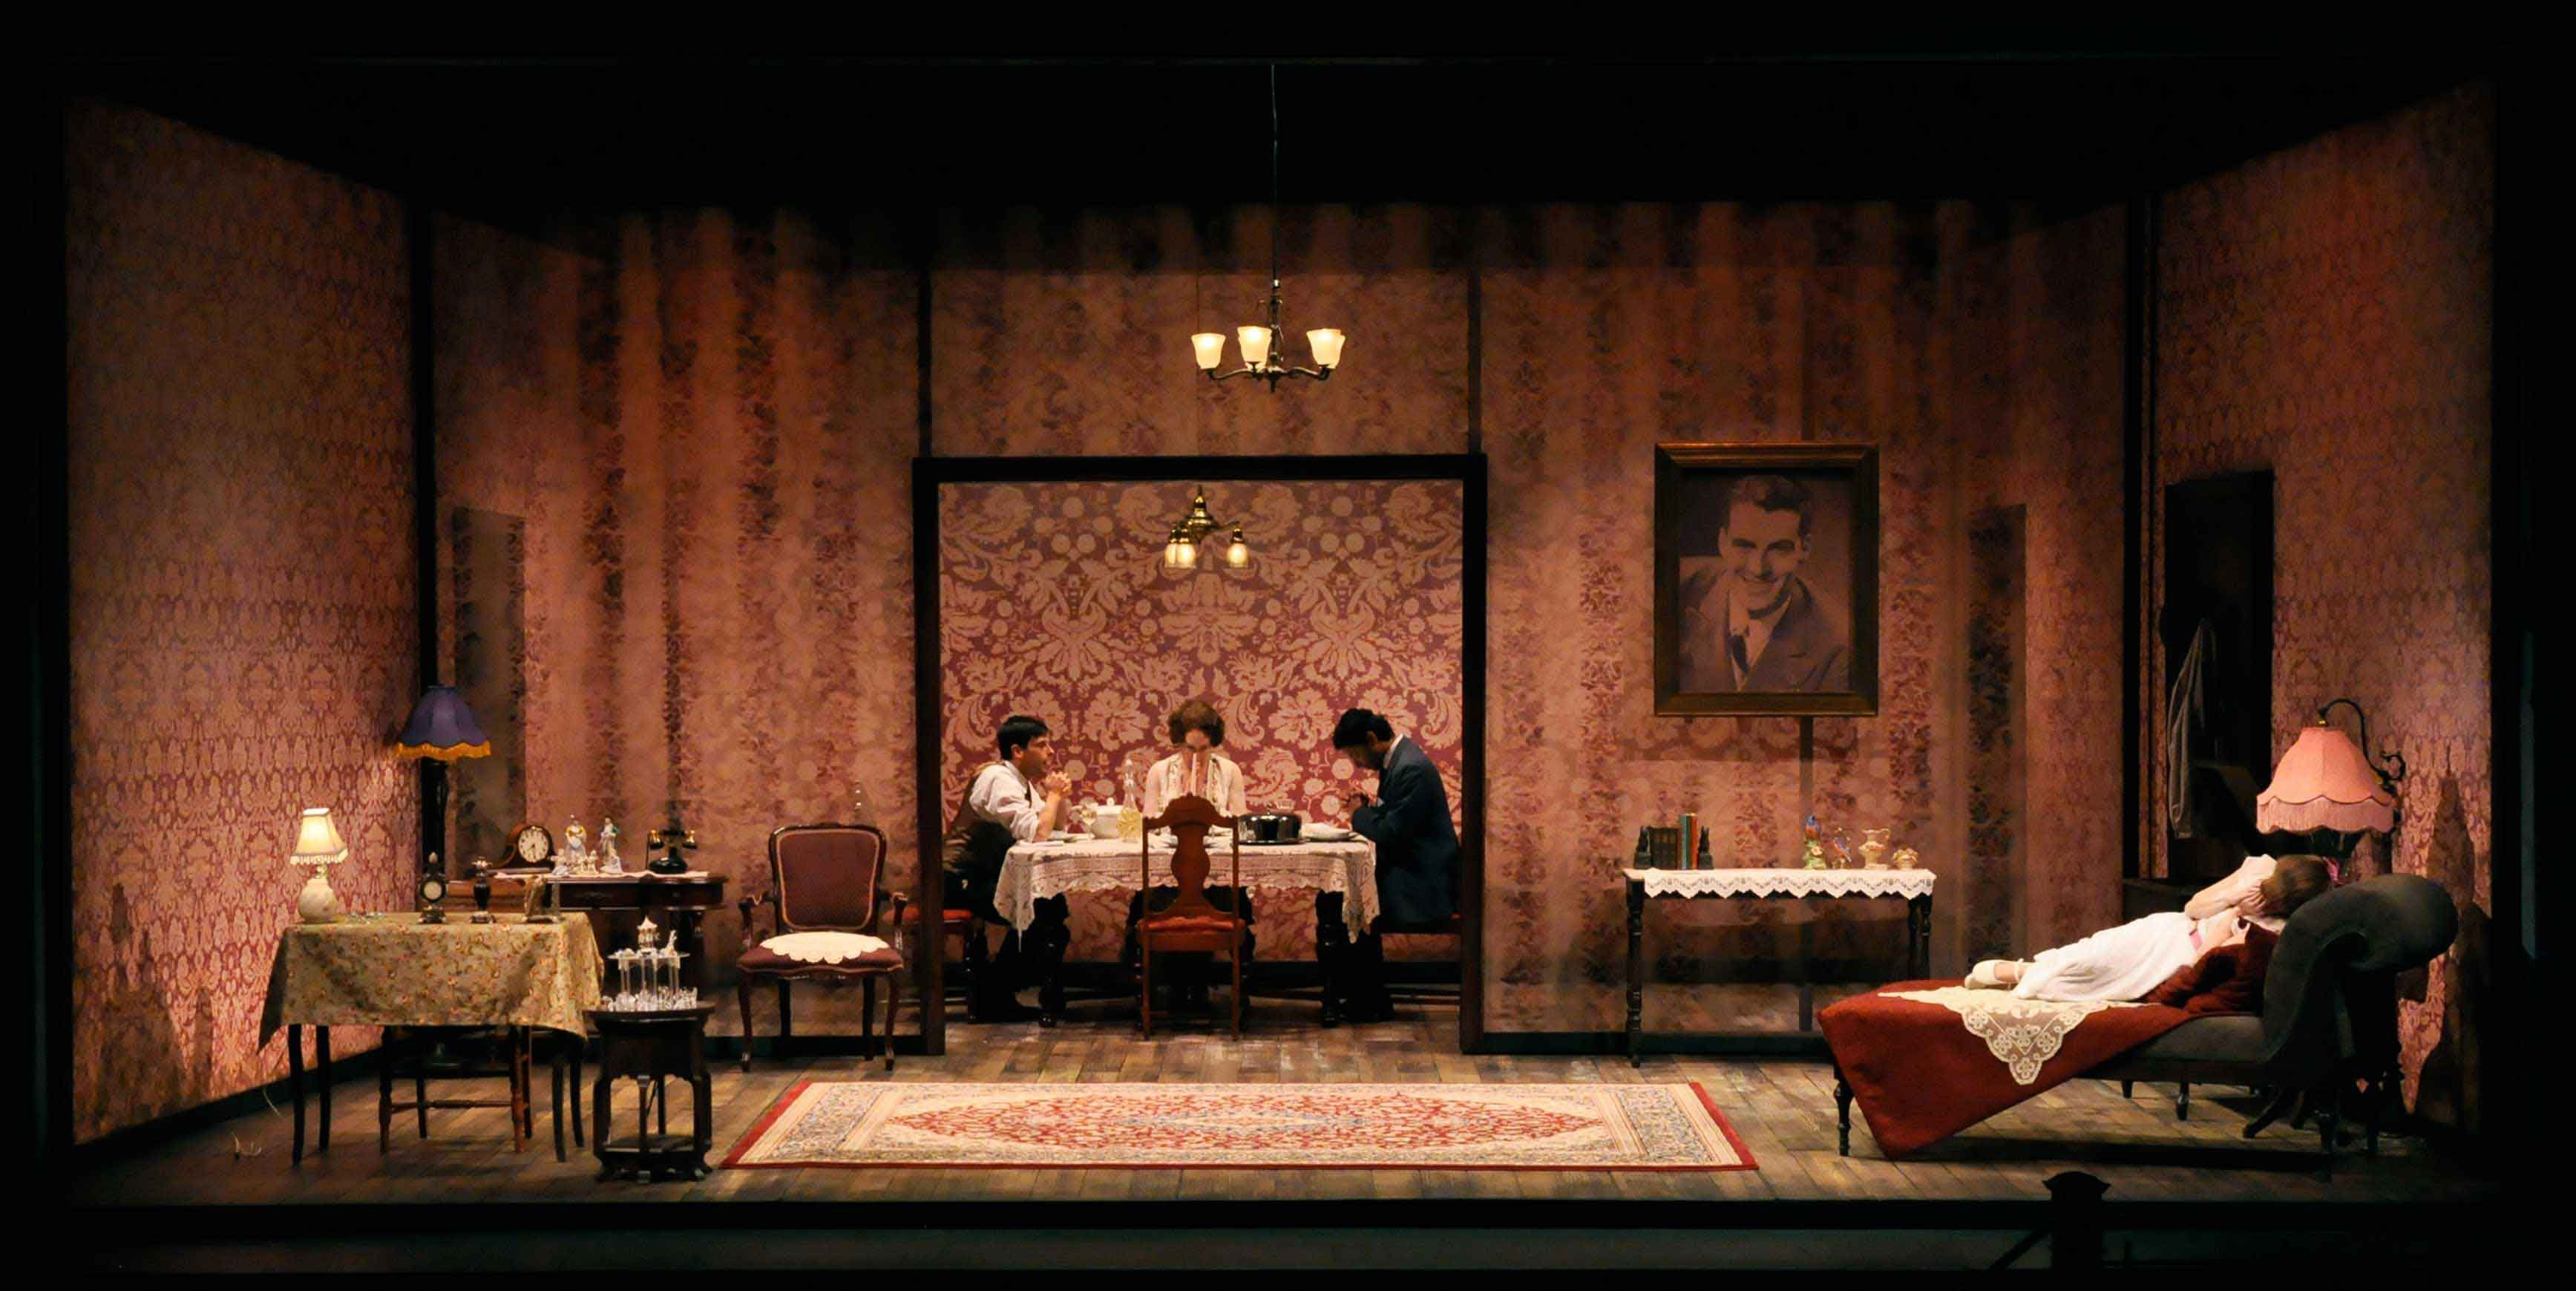 The Glass Menagerie Rep At University Of Delaware Scenic Design By Junghyun Georgia The Glass Menagerie Lighting Design Theatre Set Design Theatre